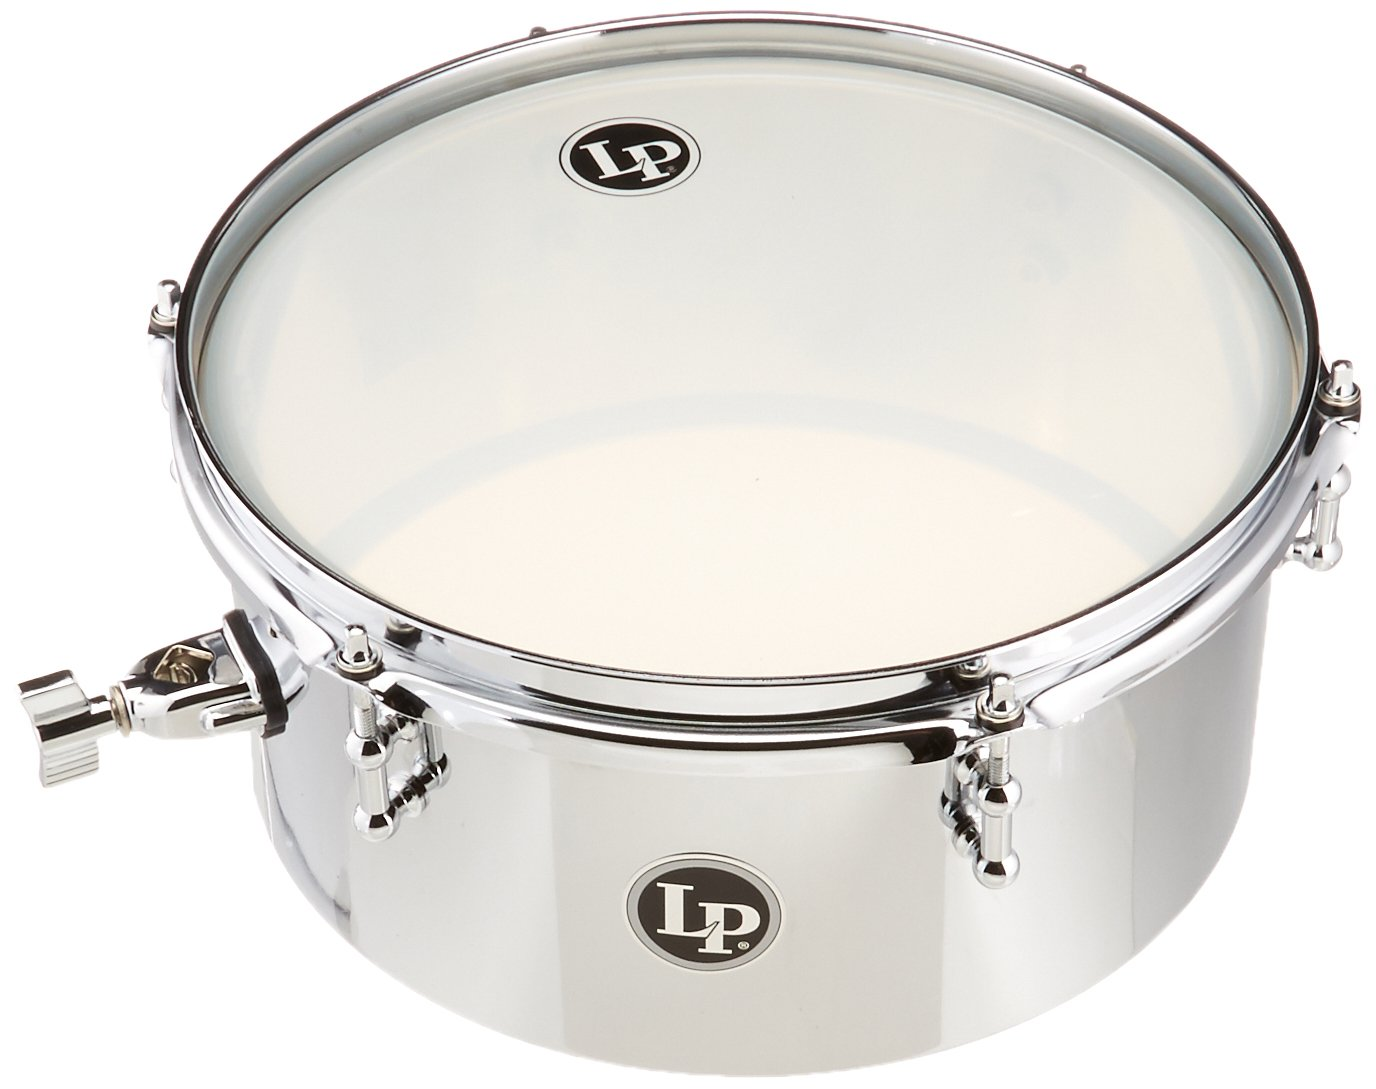 Latin Percussion LP812-C Timbal, Chrome KMC Music Inc